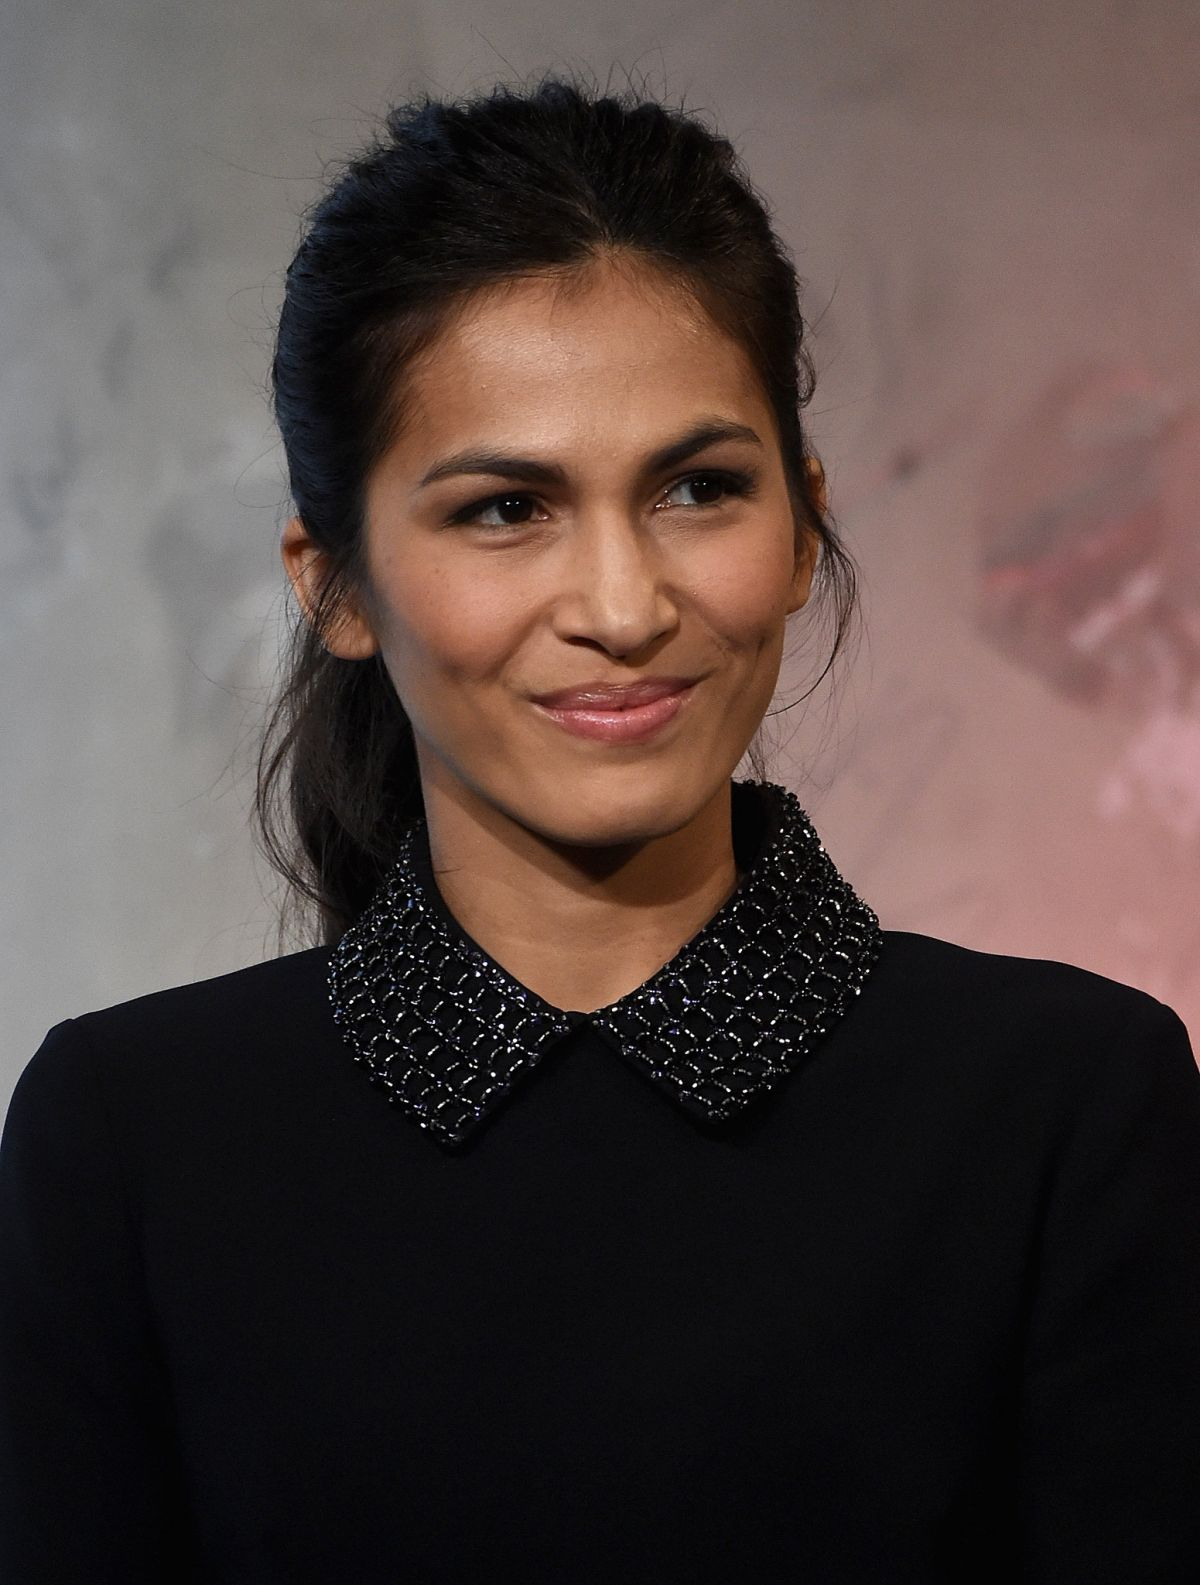 Elodie Yung Wallpaper | Full HD Pictures